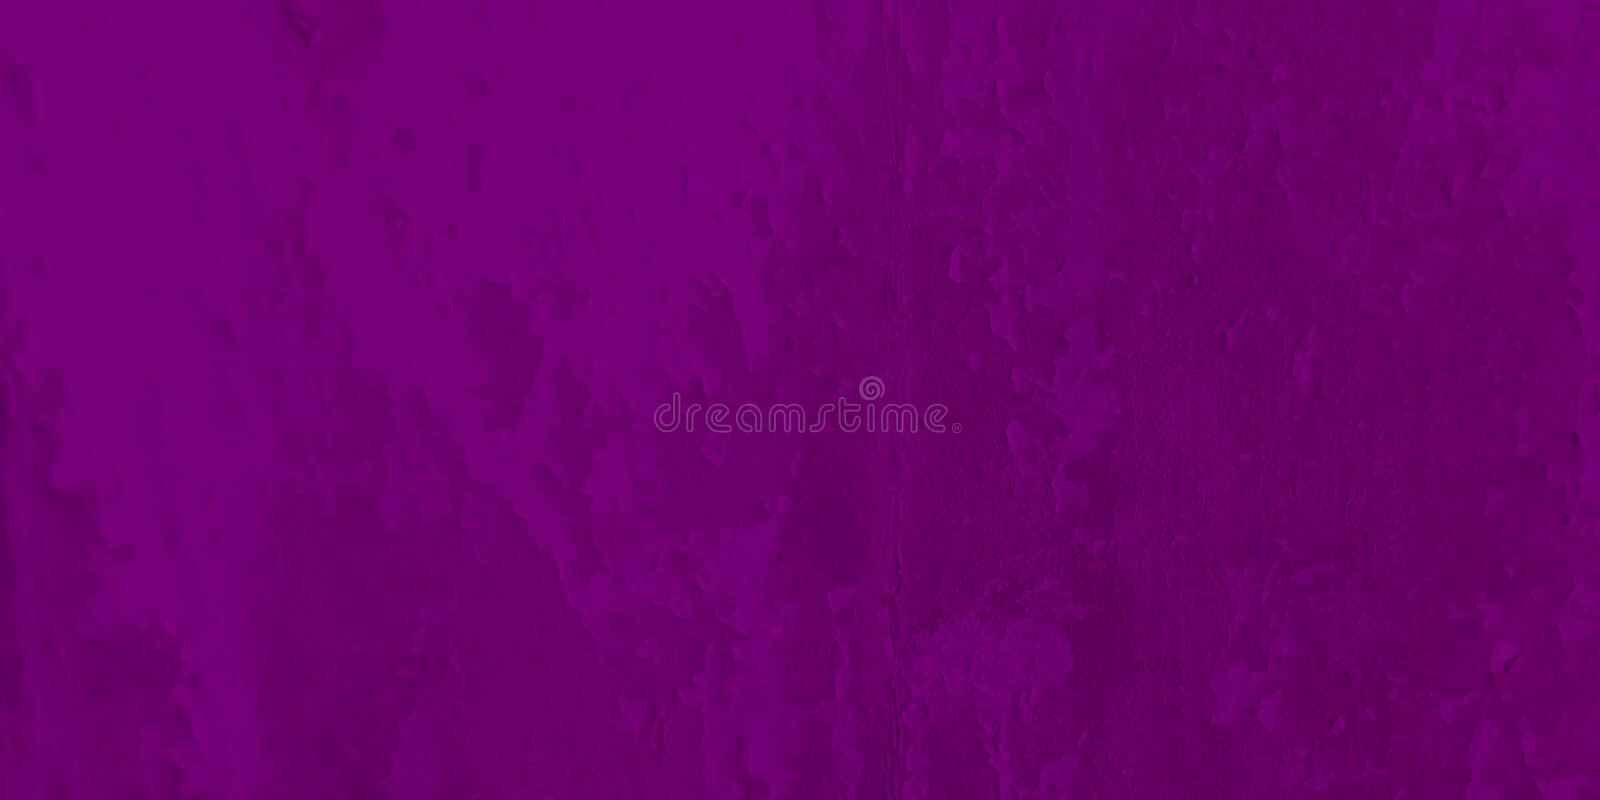 Abstract plum color with texture effects Background. Many uses for advertising, book page, paintings, printing, mobile wallpaper, mobile backgrounds, book vector illustration